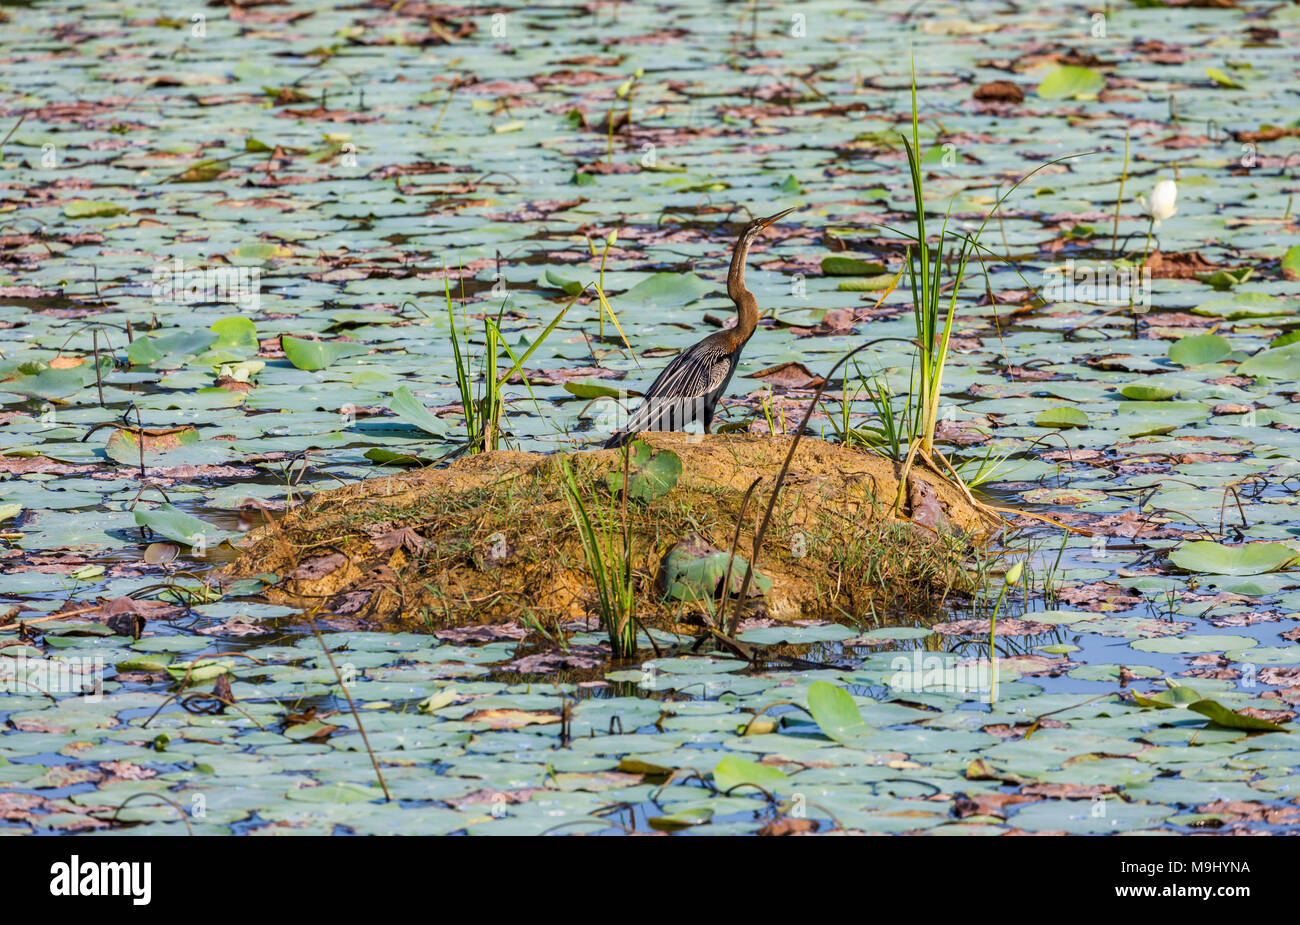 Oriental darter, Anhinga melanogaster, standing in a water lily pond in southern Sri Lanka - Stock Image